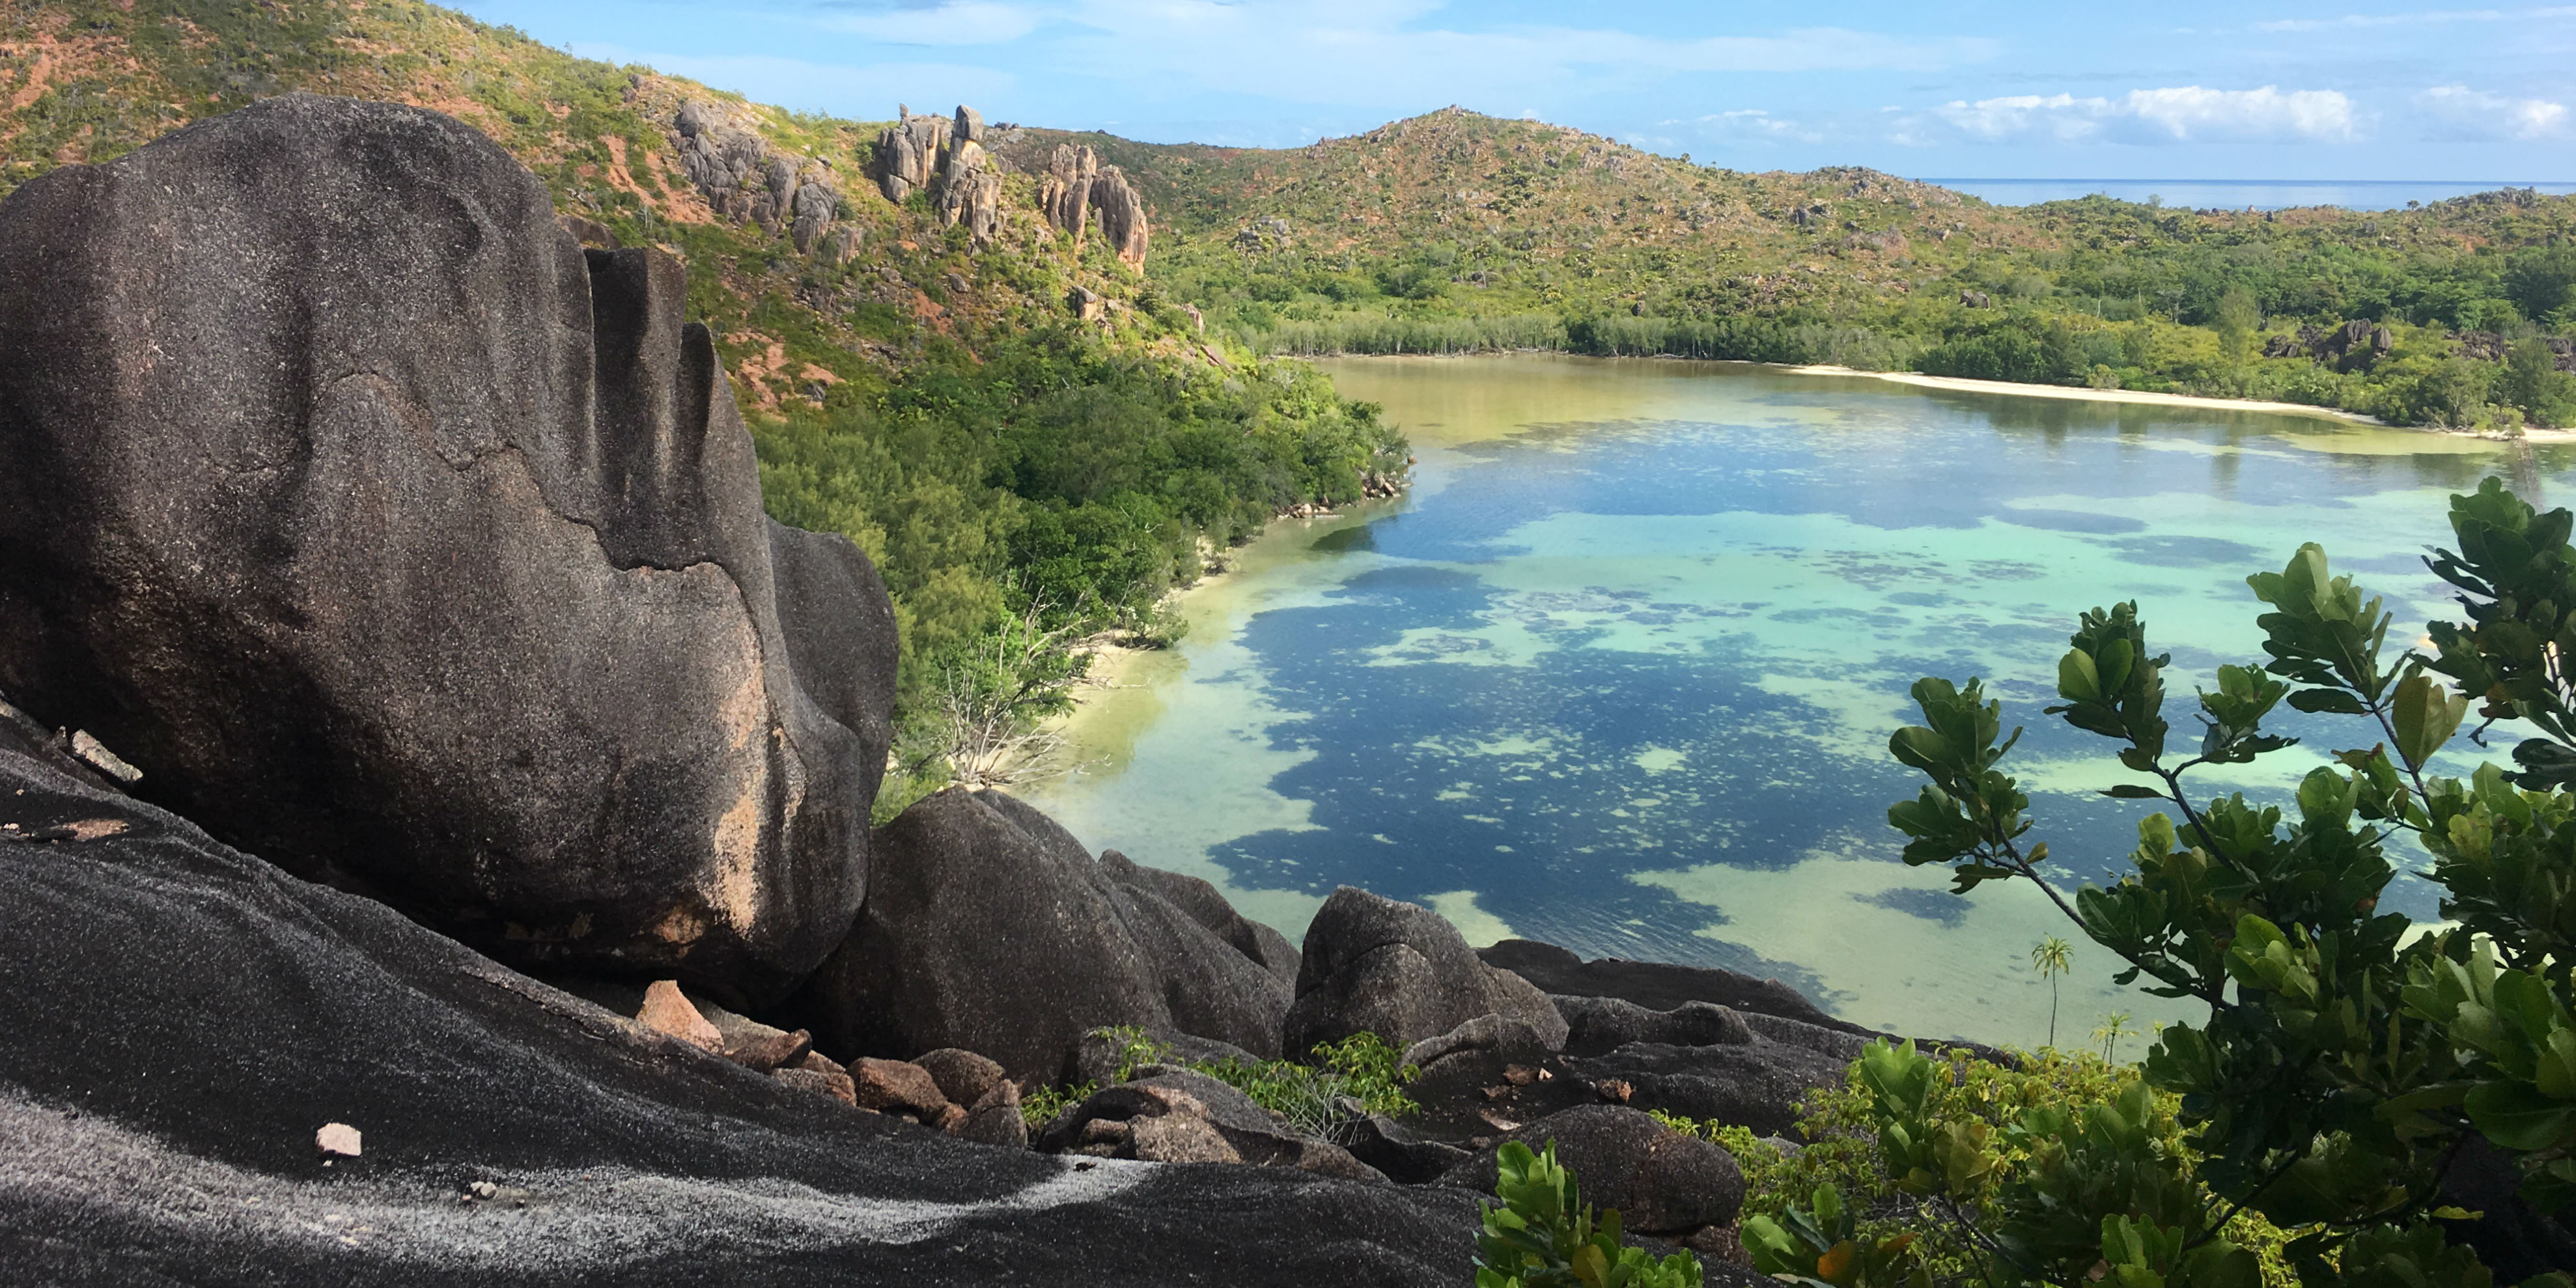 Granitic rock formations like this are a memorable feature on Curieuse Island.